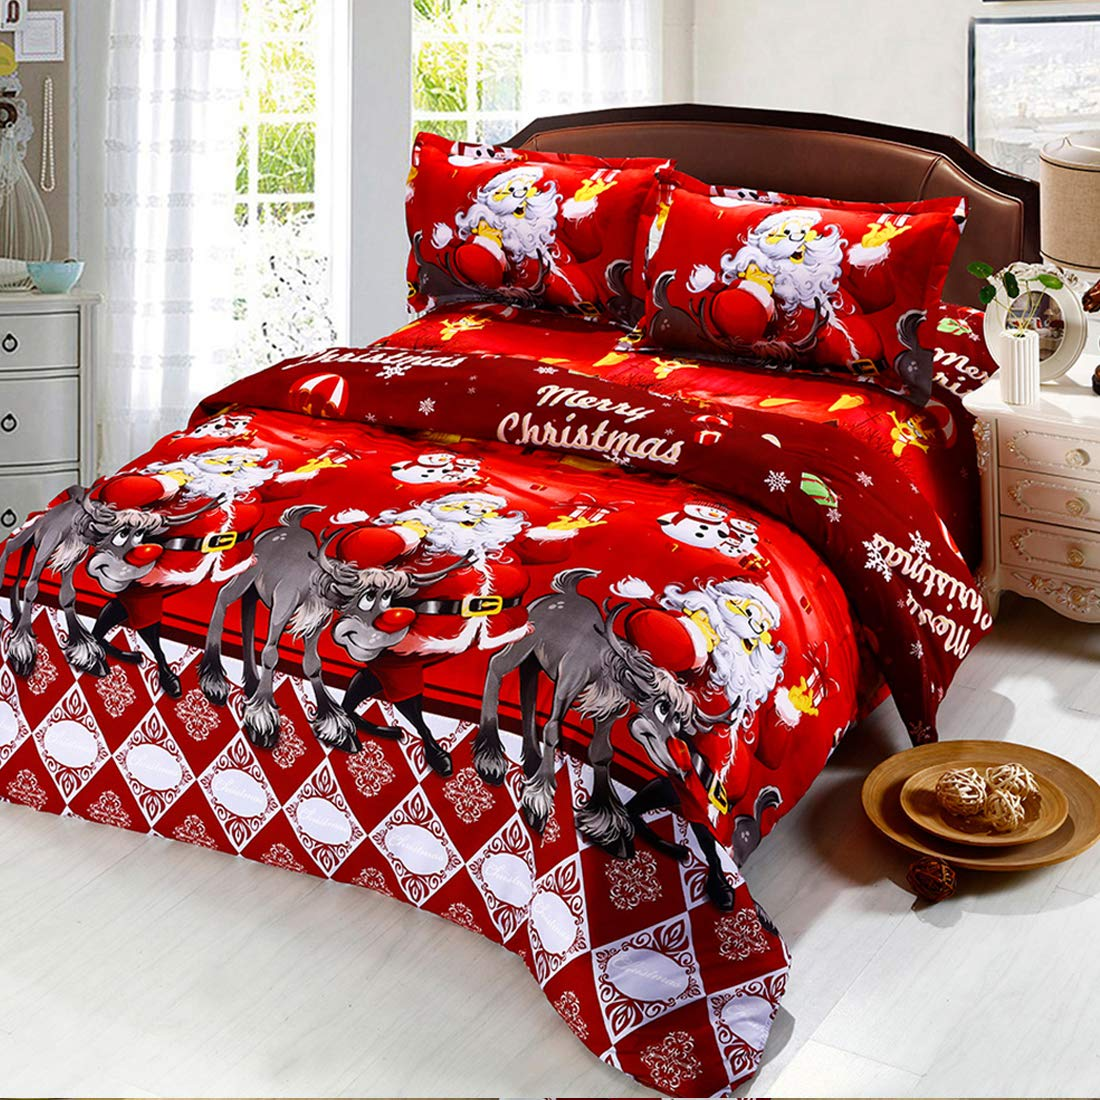 Santa Claus Duvet Cover Flat Sheet Standard Pillowcases-Red,Christmas Home Decor